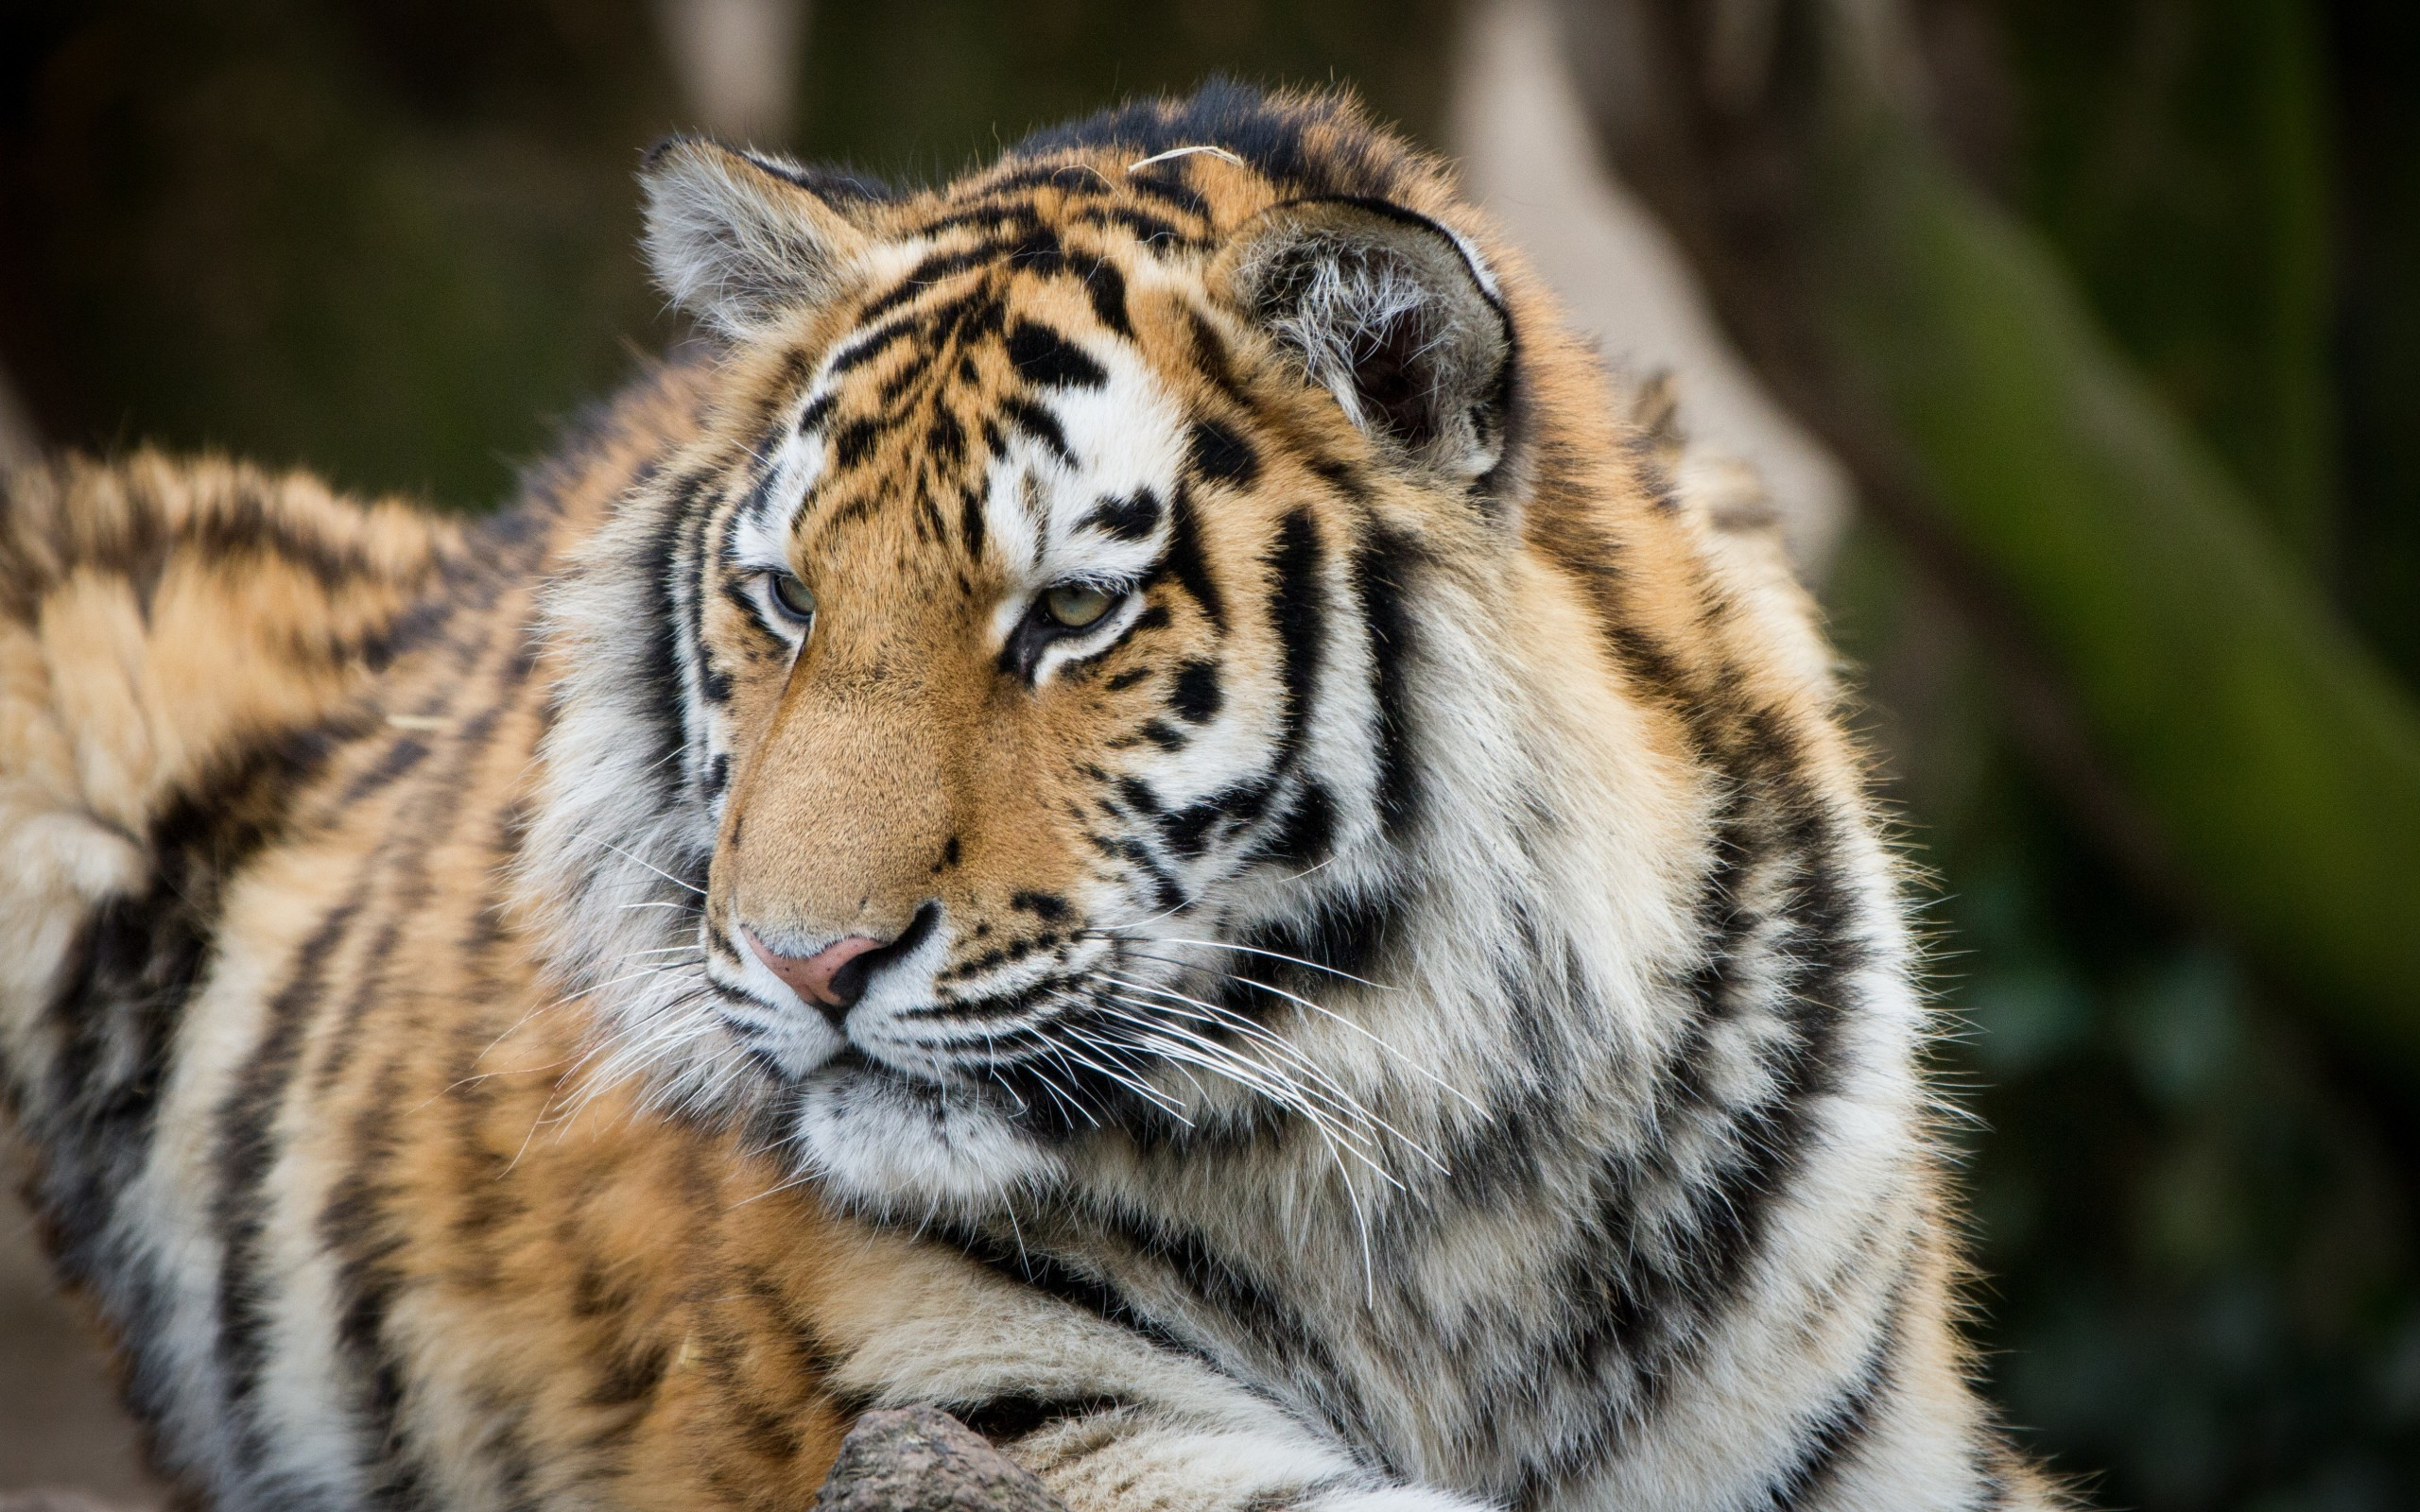 2560x1600 Tiger, Majestic, Lying Down, Looking Away, Predator, Big Cats